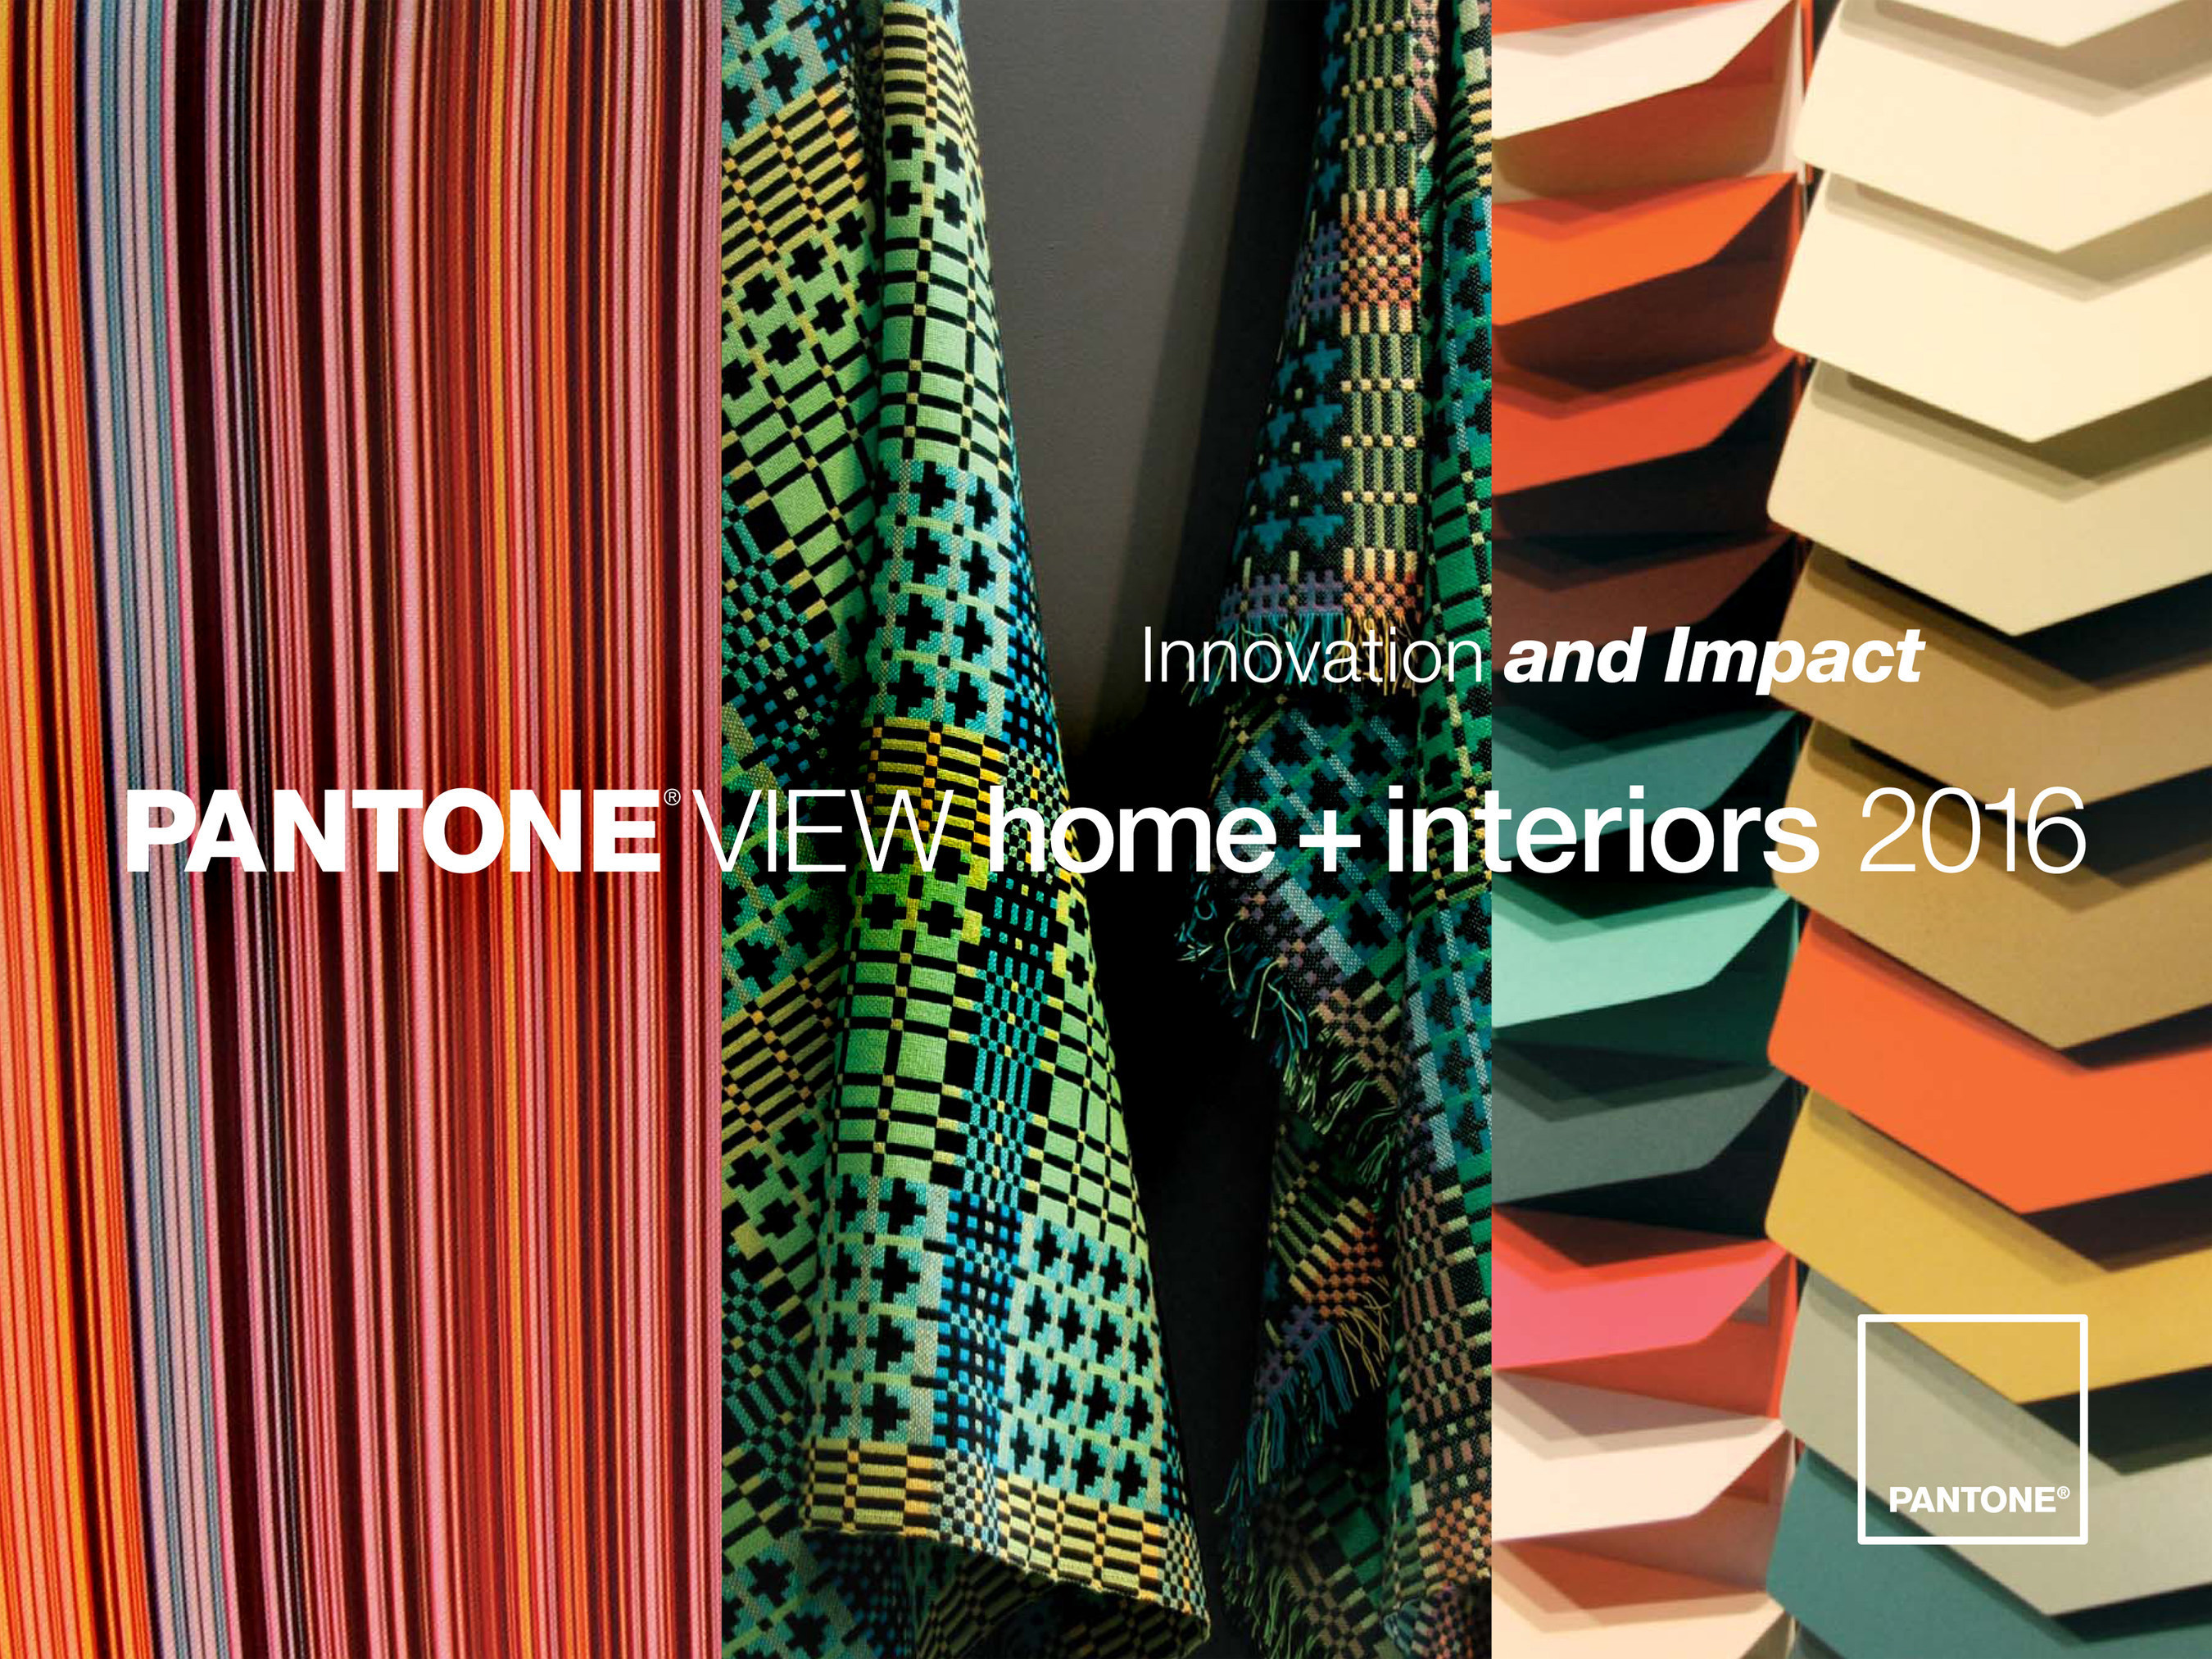 Pantone Color Institute Announces 2016 Color Trends For Home Furnishings And Interior Design Textiles Update